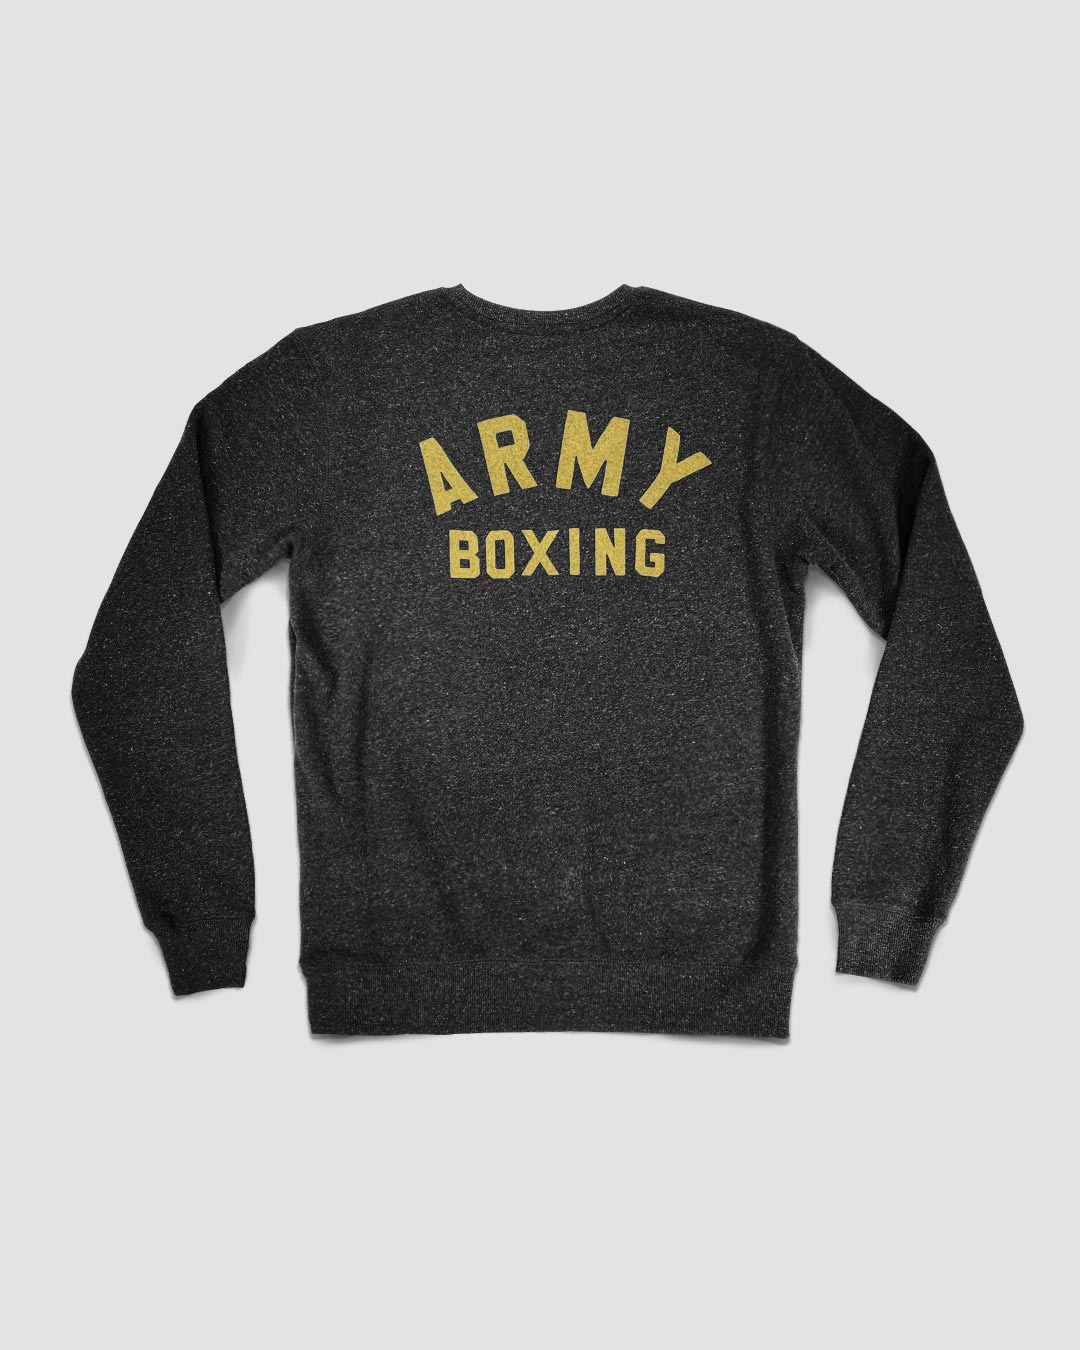 Sugar Ray Robinson Army Boxing Sweatshirt - Roots of Inc dba Roots of Fight